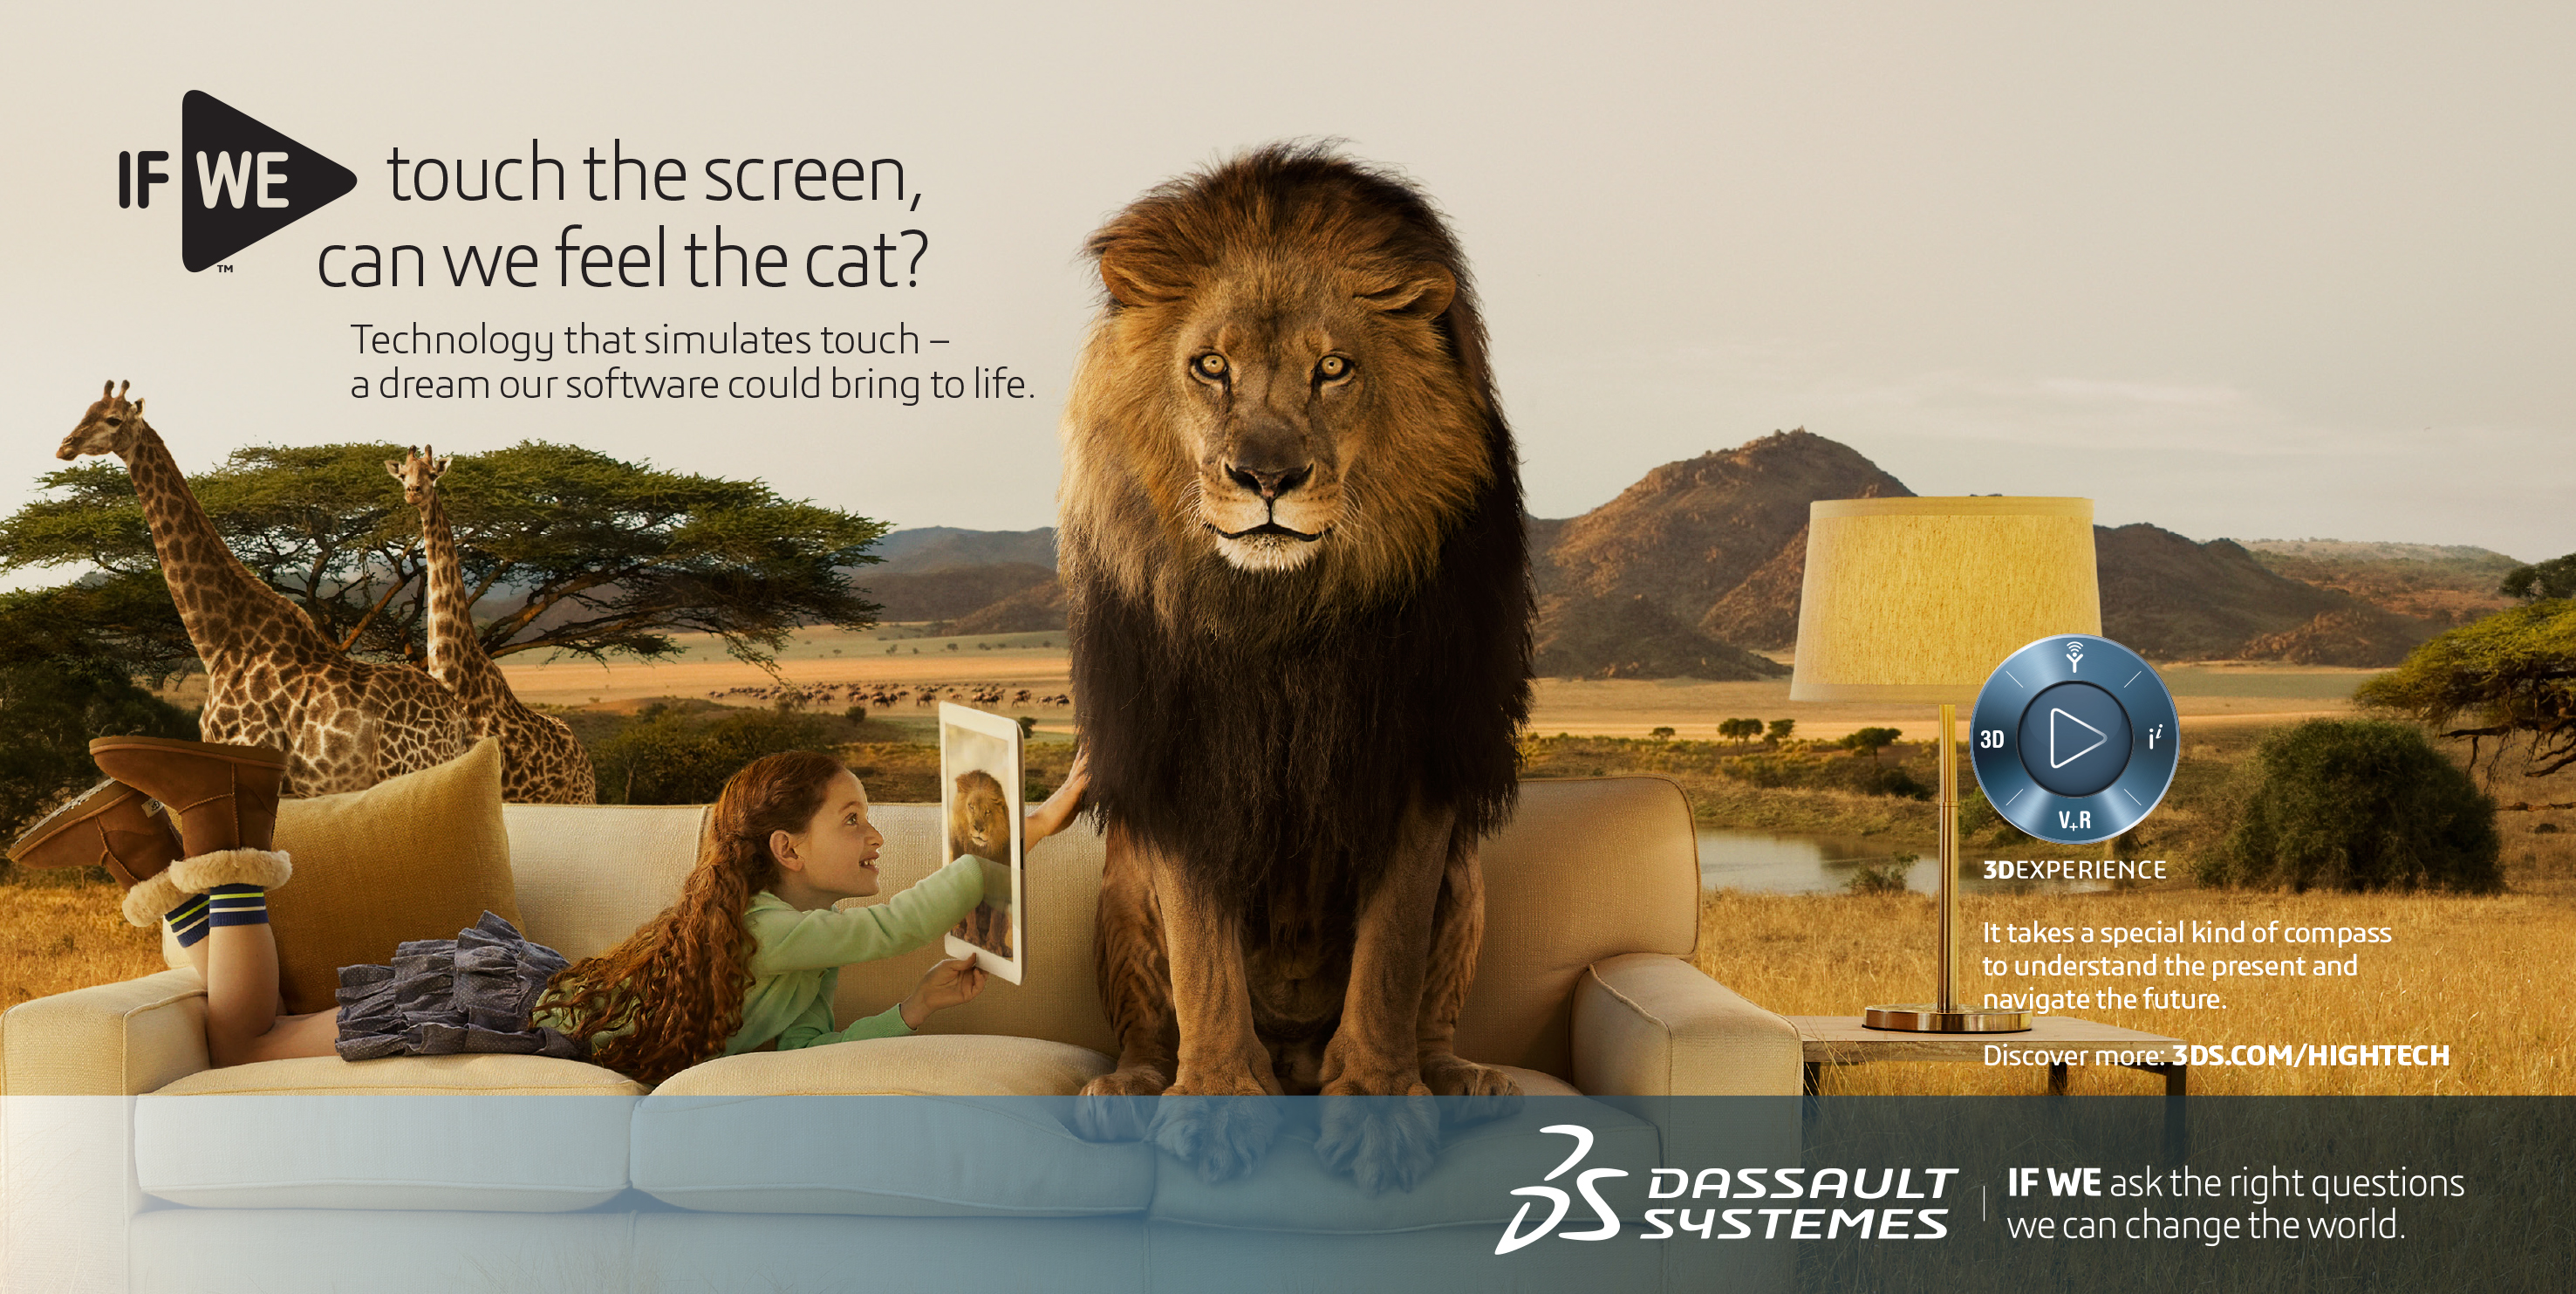 Dassault Systèmes returns with 'If we' campaign